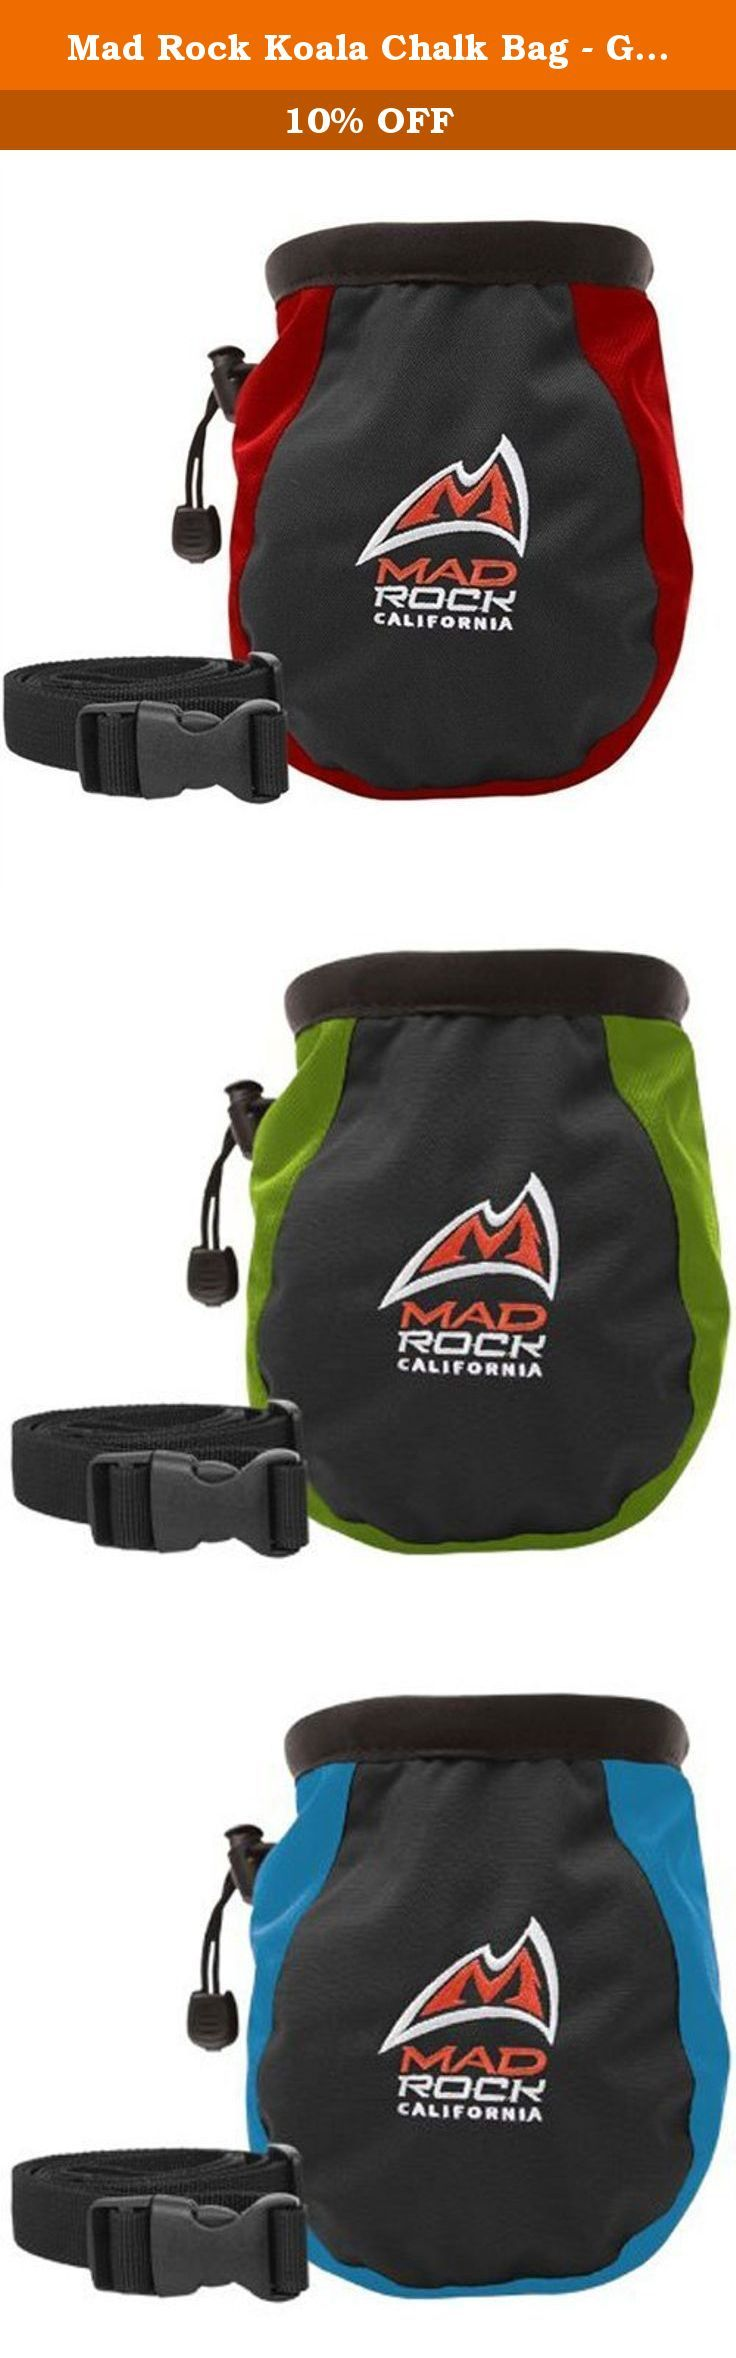 Mad Rock Koala Chalk Bag - Green. Beautifully designed chalk bag with stiff, easy-access rim and tooth brush holder. Waist belt included!.